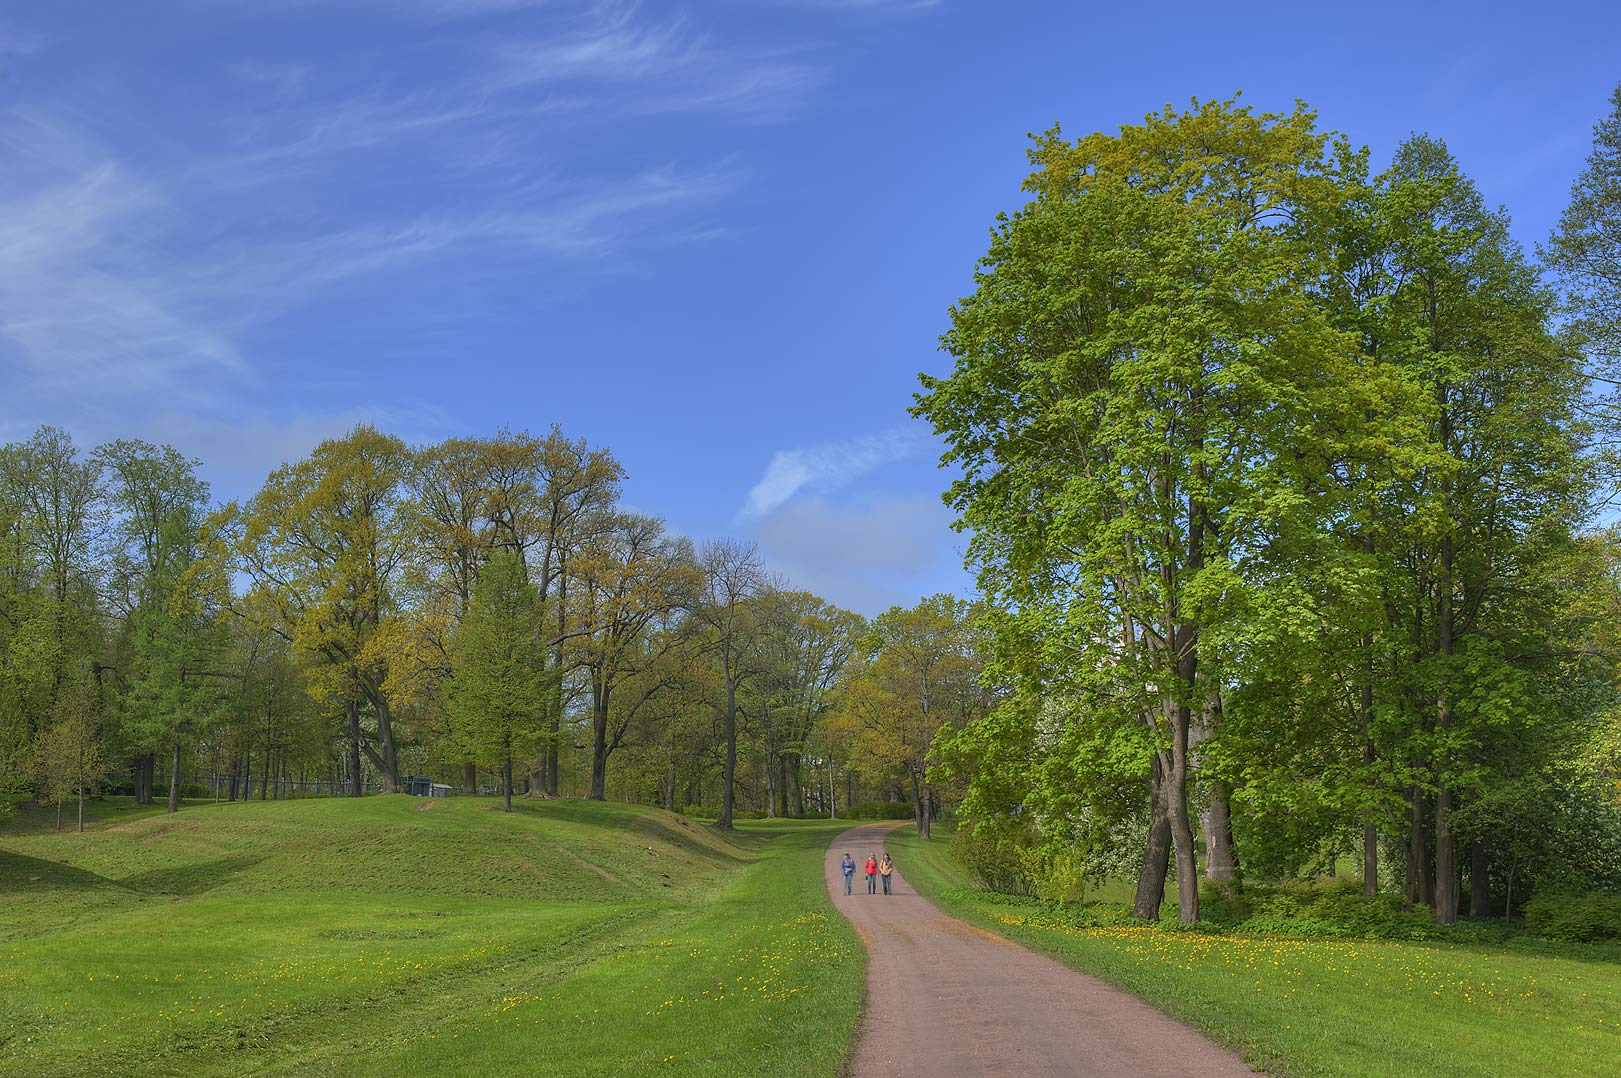 Road in Alexandria Park in Peterhof, west from St.Petersburg. Russia